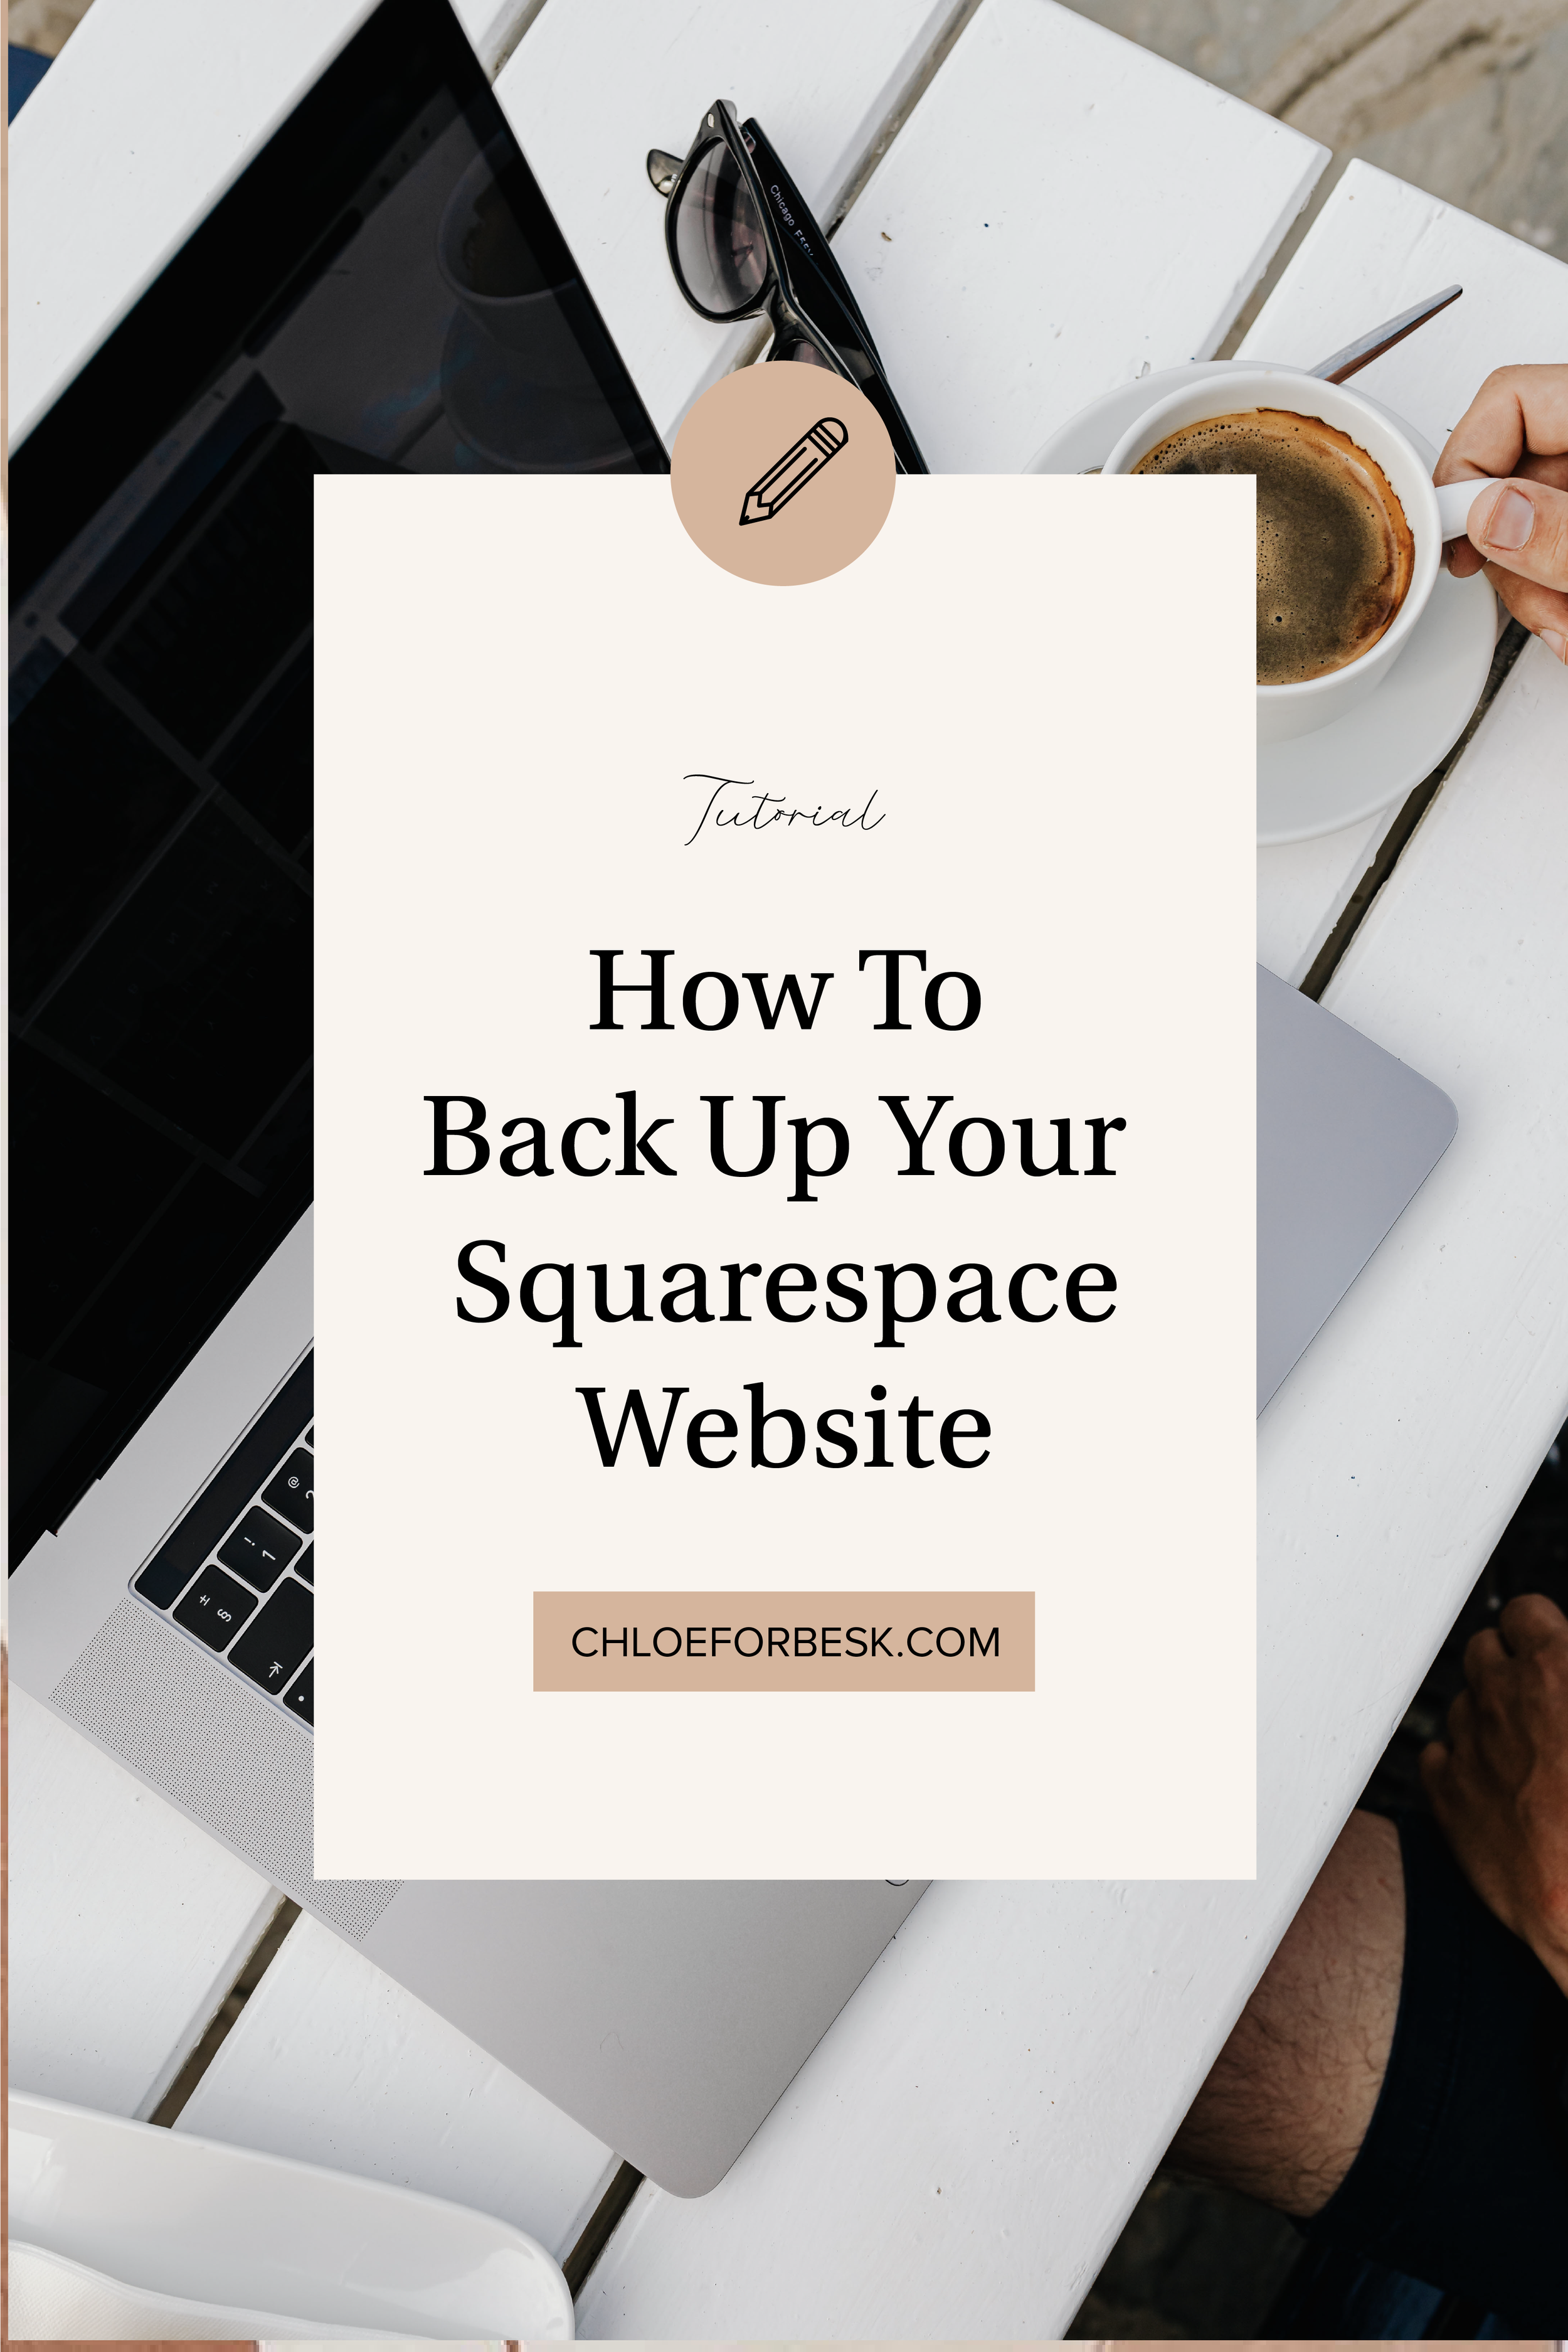 How To Back Up Your Squarespace Website-03.png